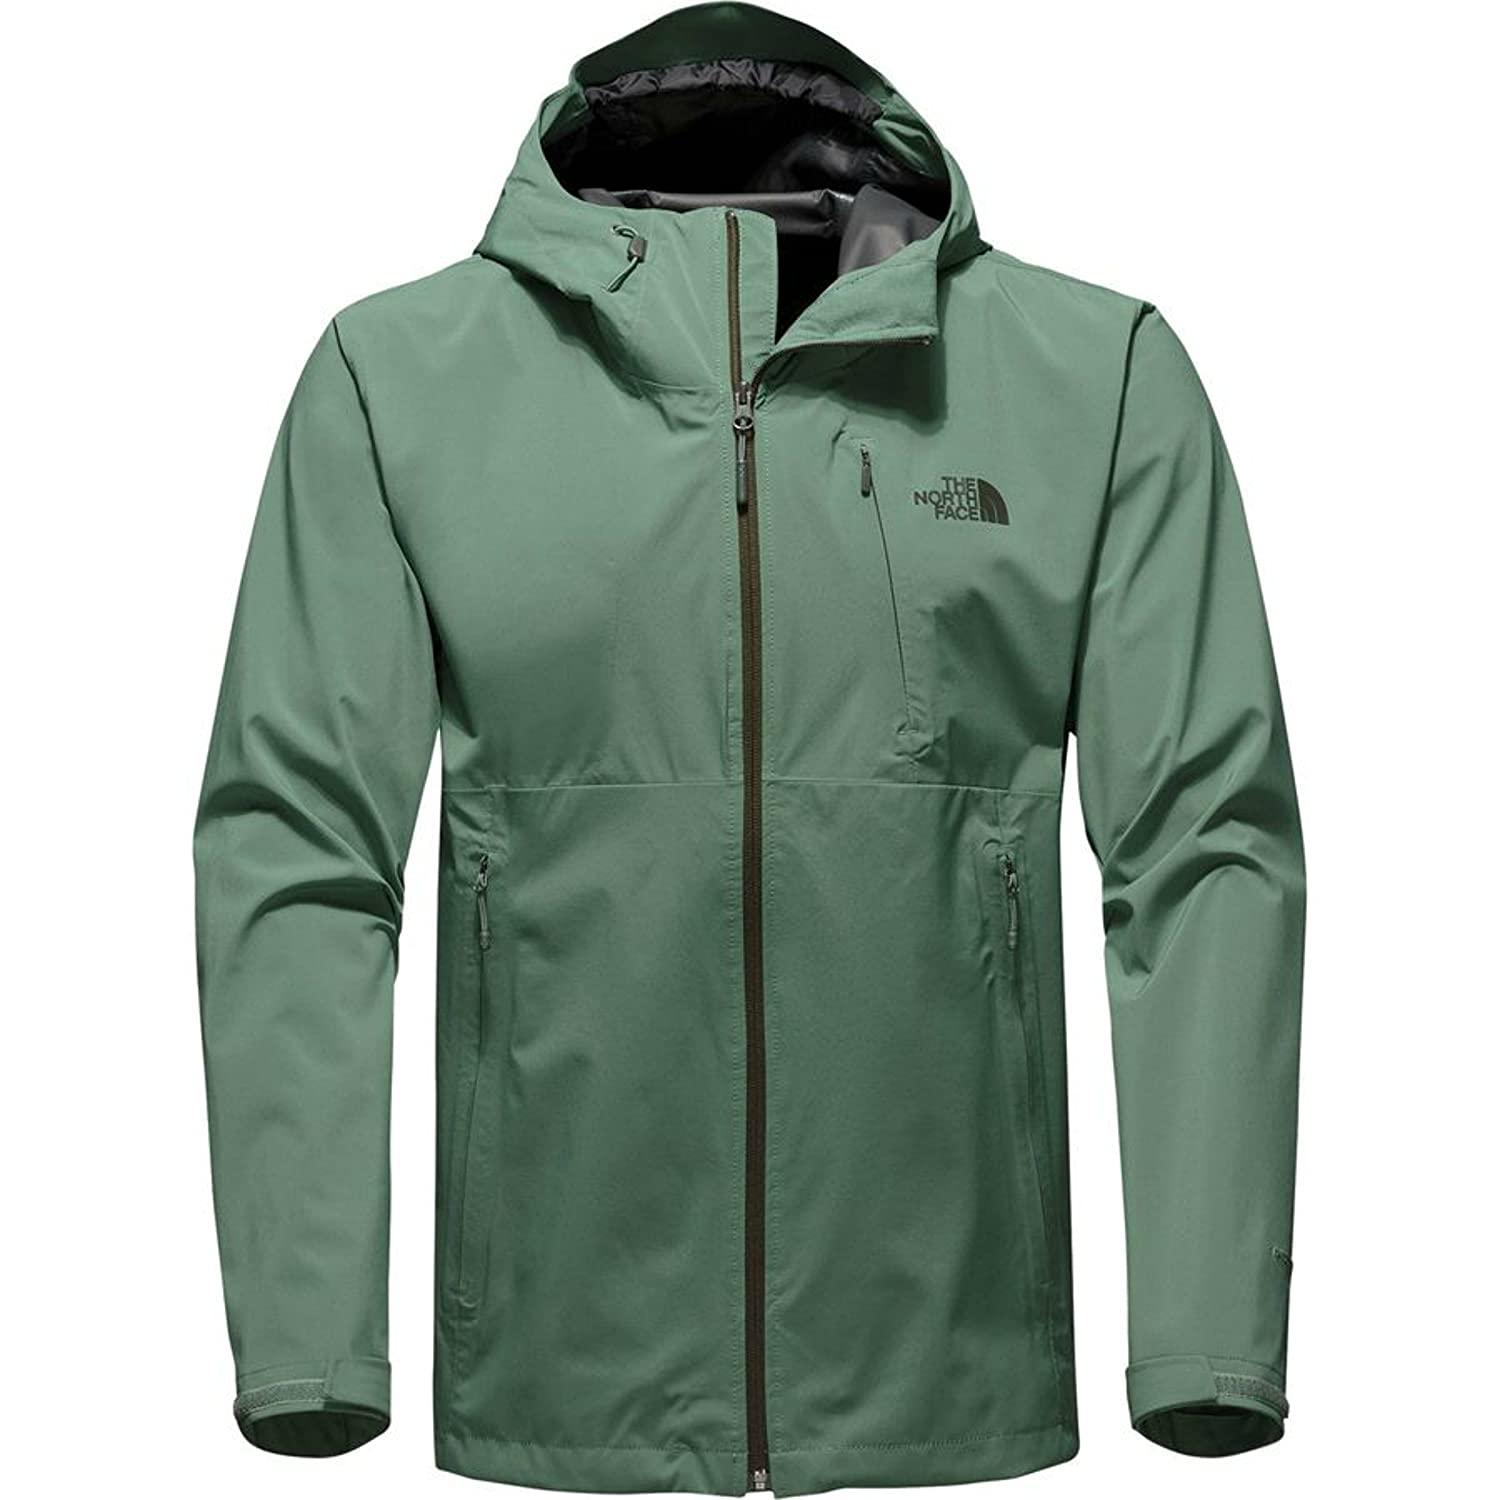 cf548b383 The North Face Men's Thermoball Triclima Insulated 3 In 1 Jacket at ...